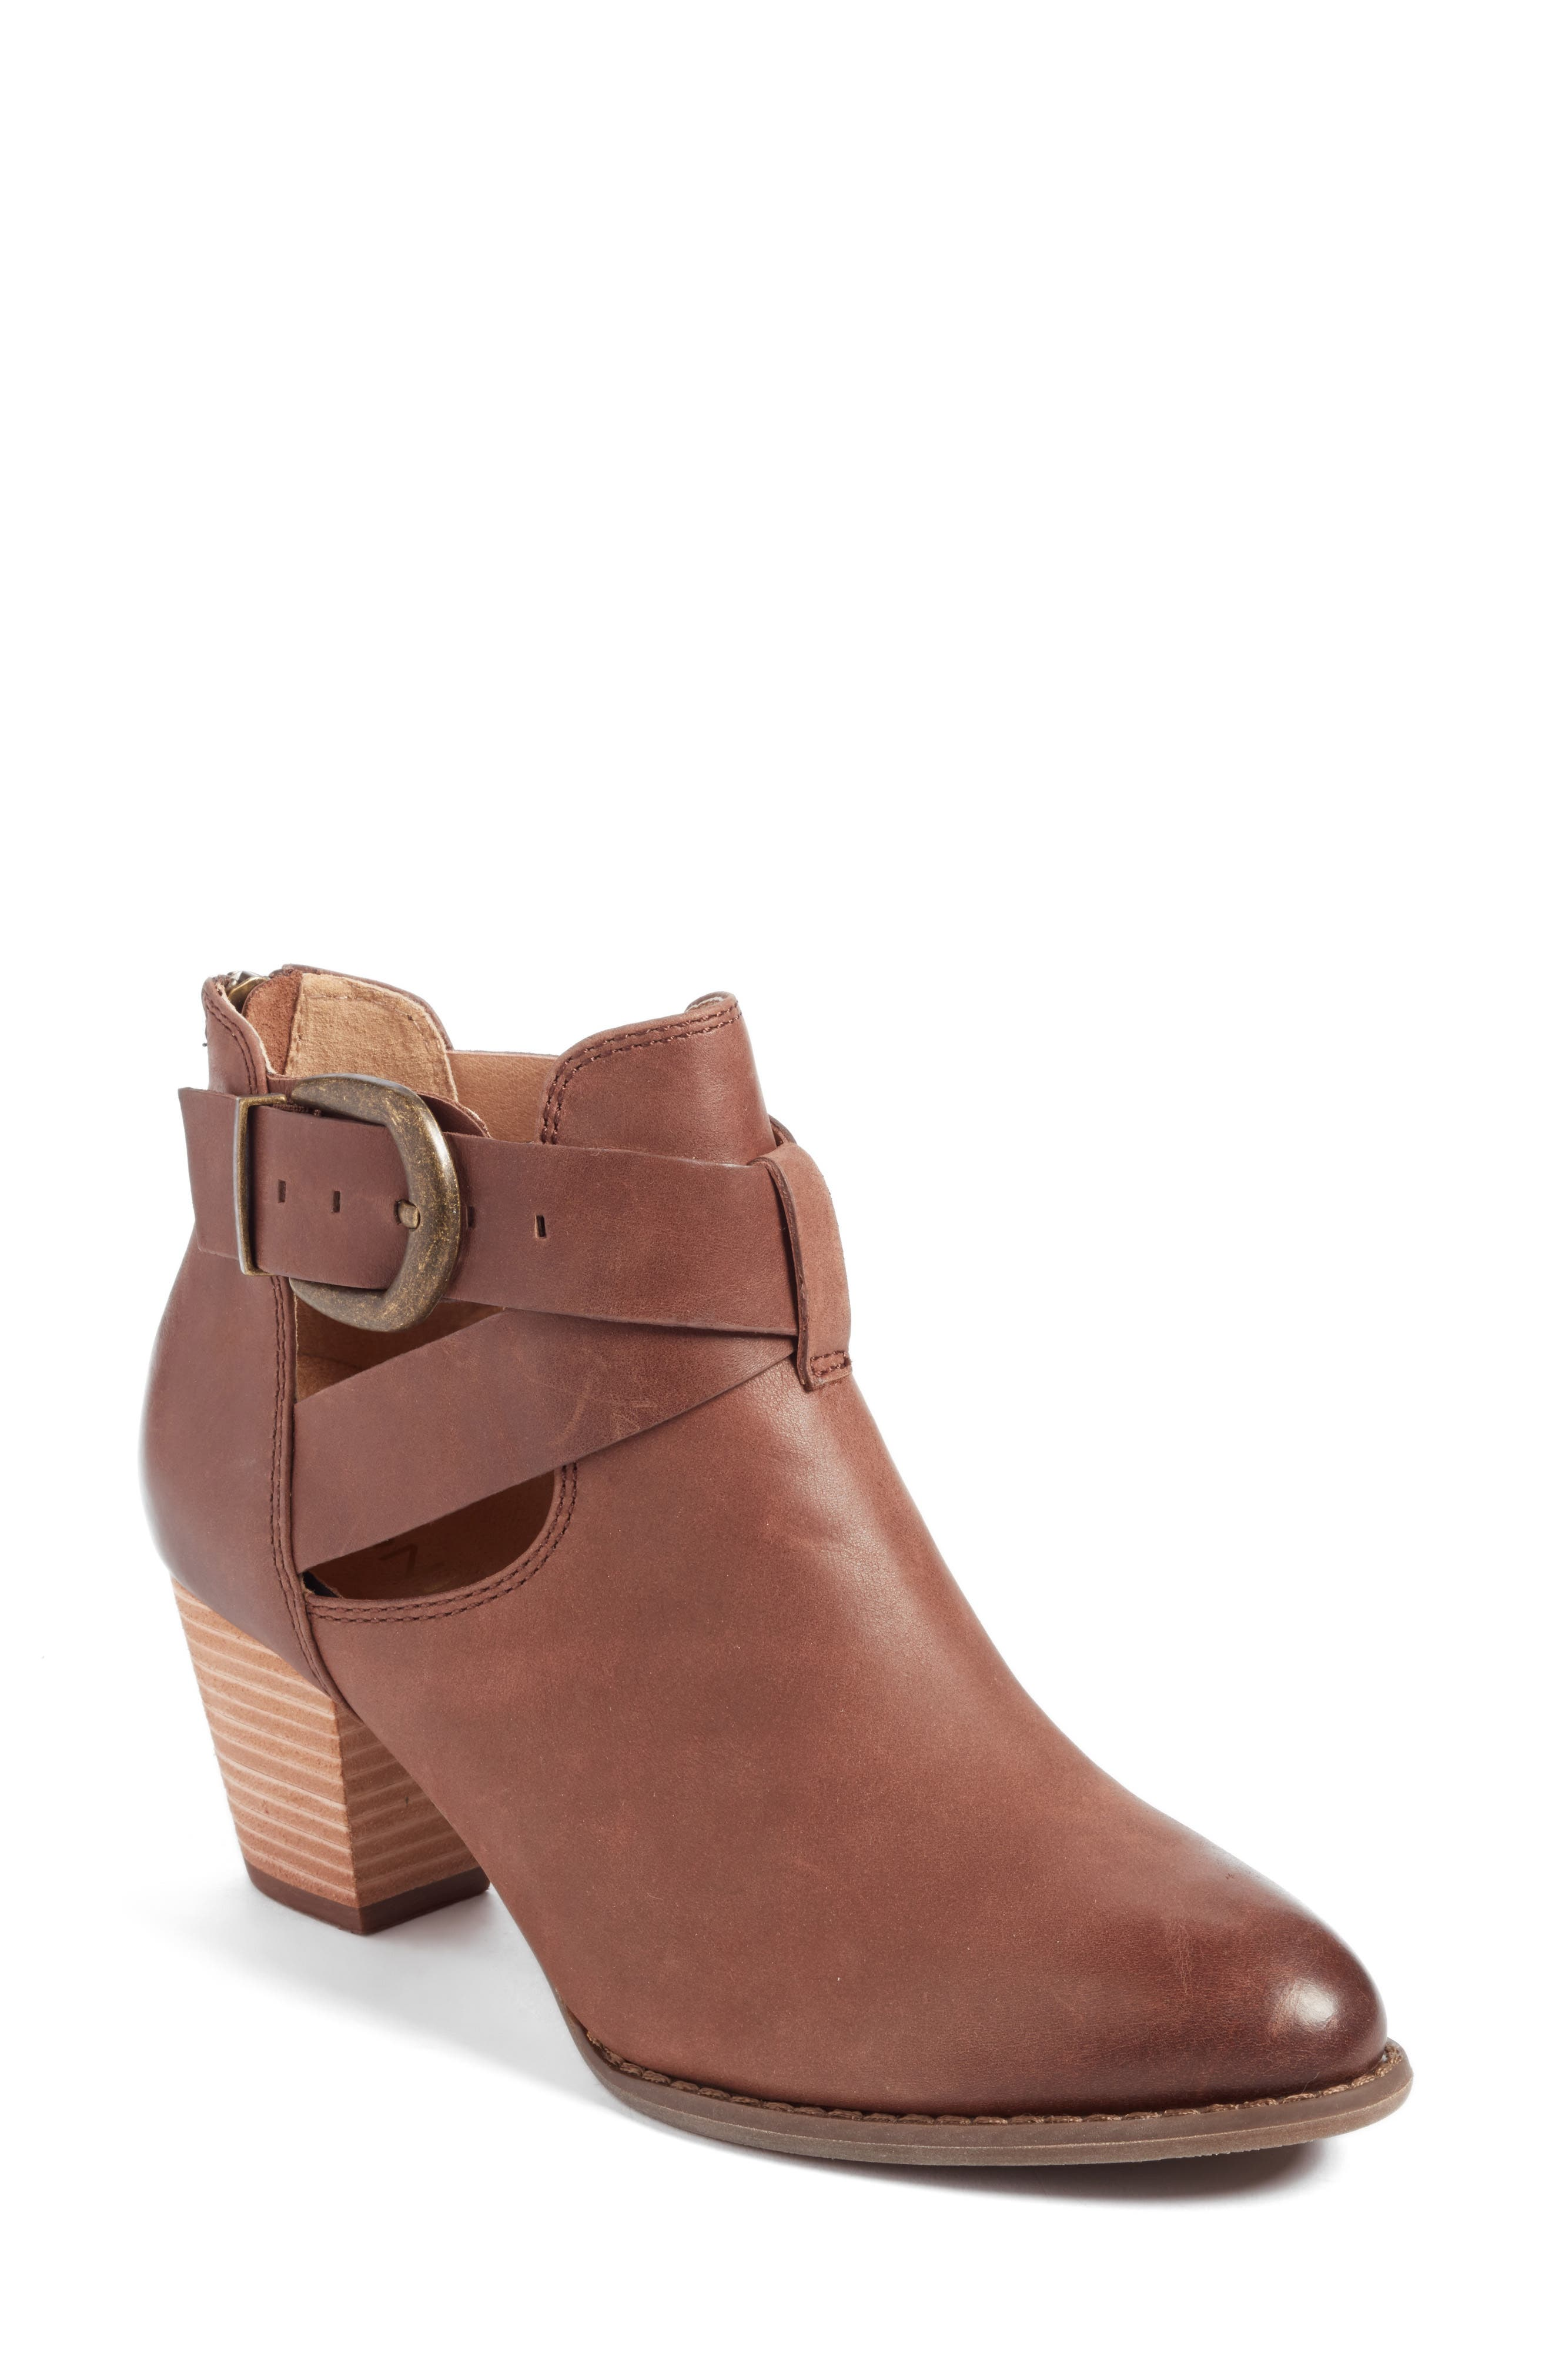 Main Image - Vionic Rory Buckle Strap Bootie (Women)